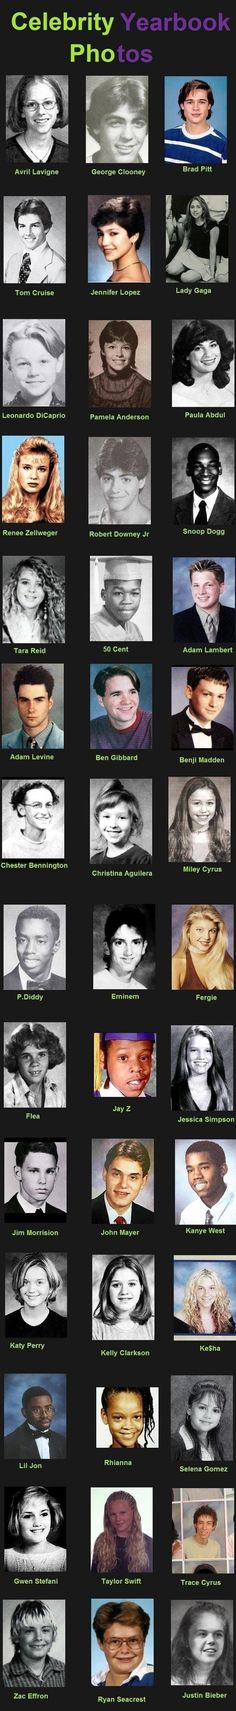 CELEBRITY HS YEARBOOK PHOTO'S - Picture. You mean Dicaprio never changed his hairdo, ever!?